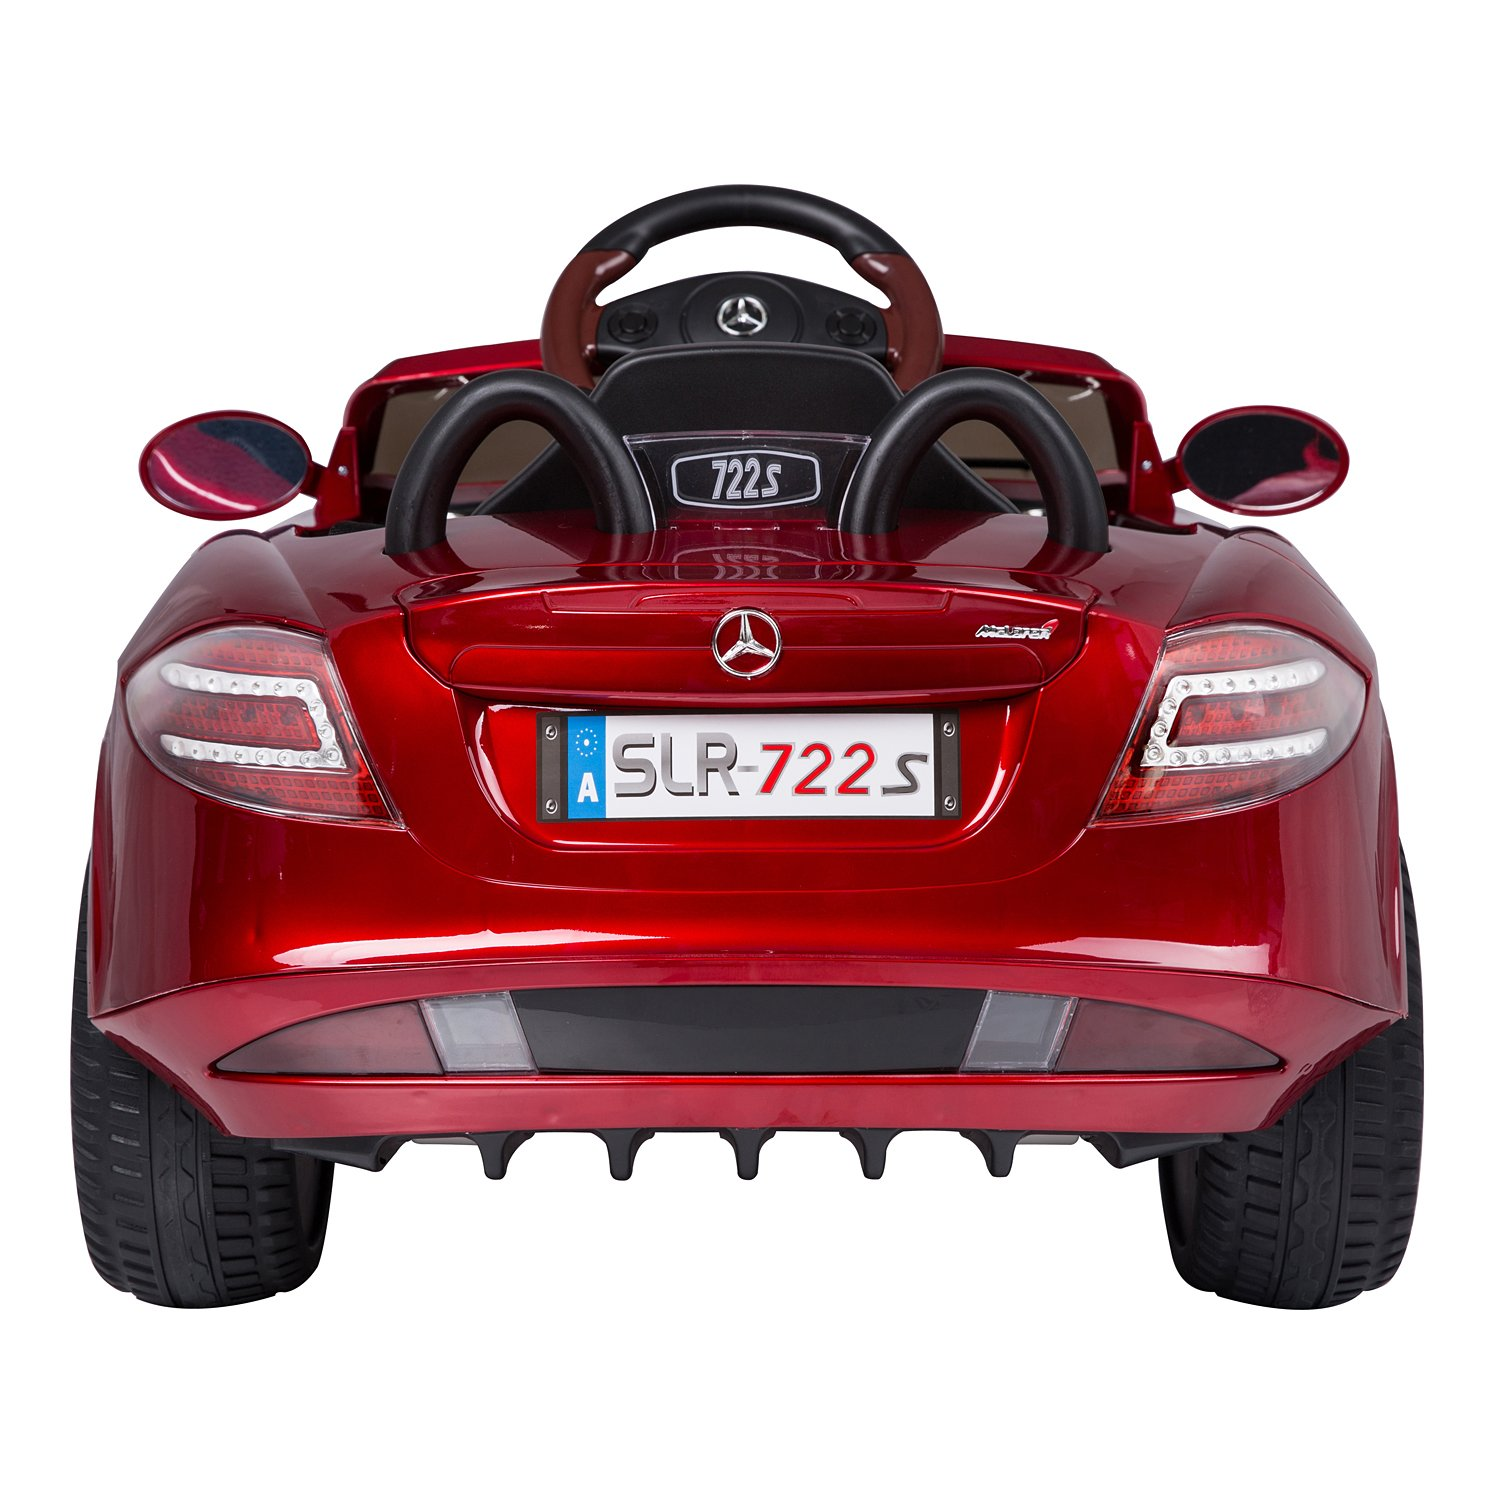 Mercedes Benz 722s Kids 12v Electric Ride On Toy Car W Remote Starter Diagram Parent Control Red By Aosom Toys Games